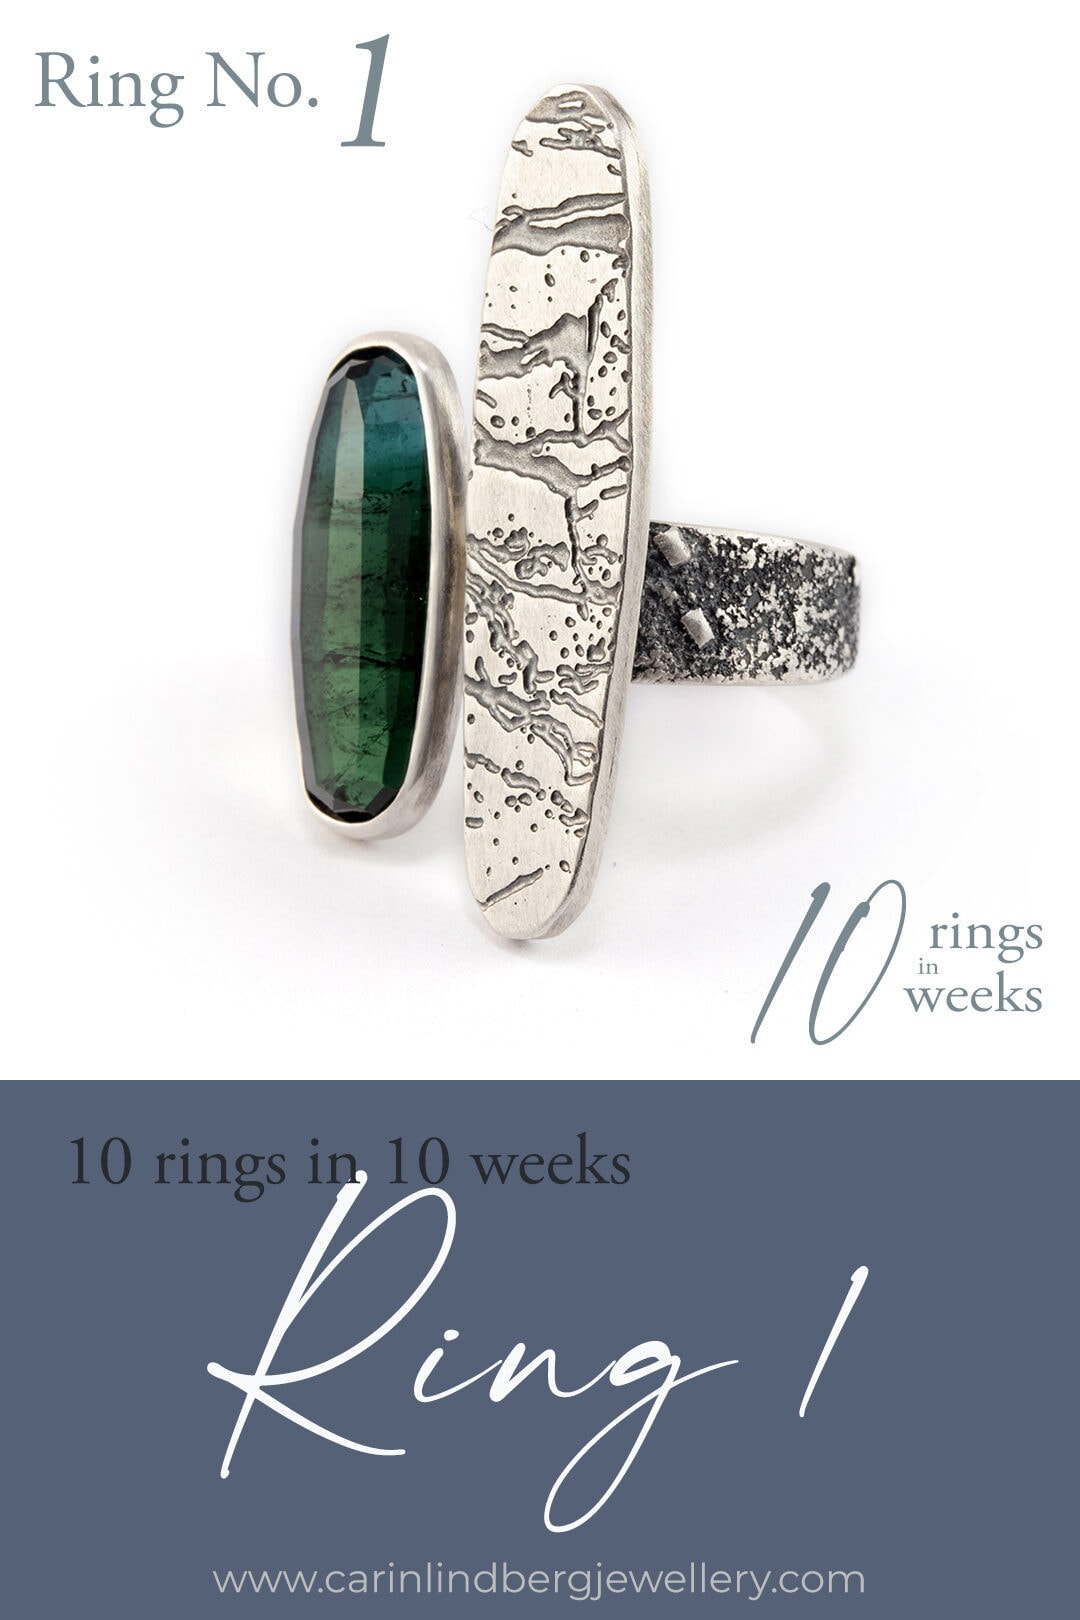 10 rings in 10 weeks: Ring 1 Blue green tourmaline and slate patterned statement ring